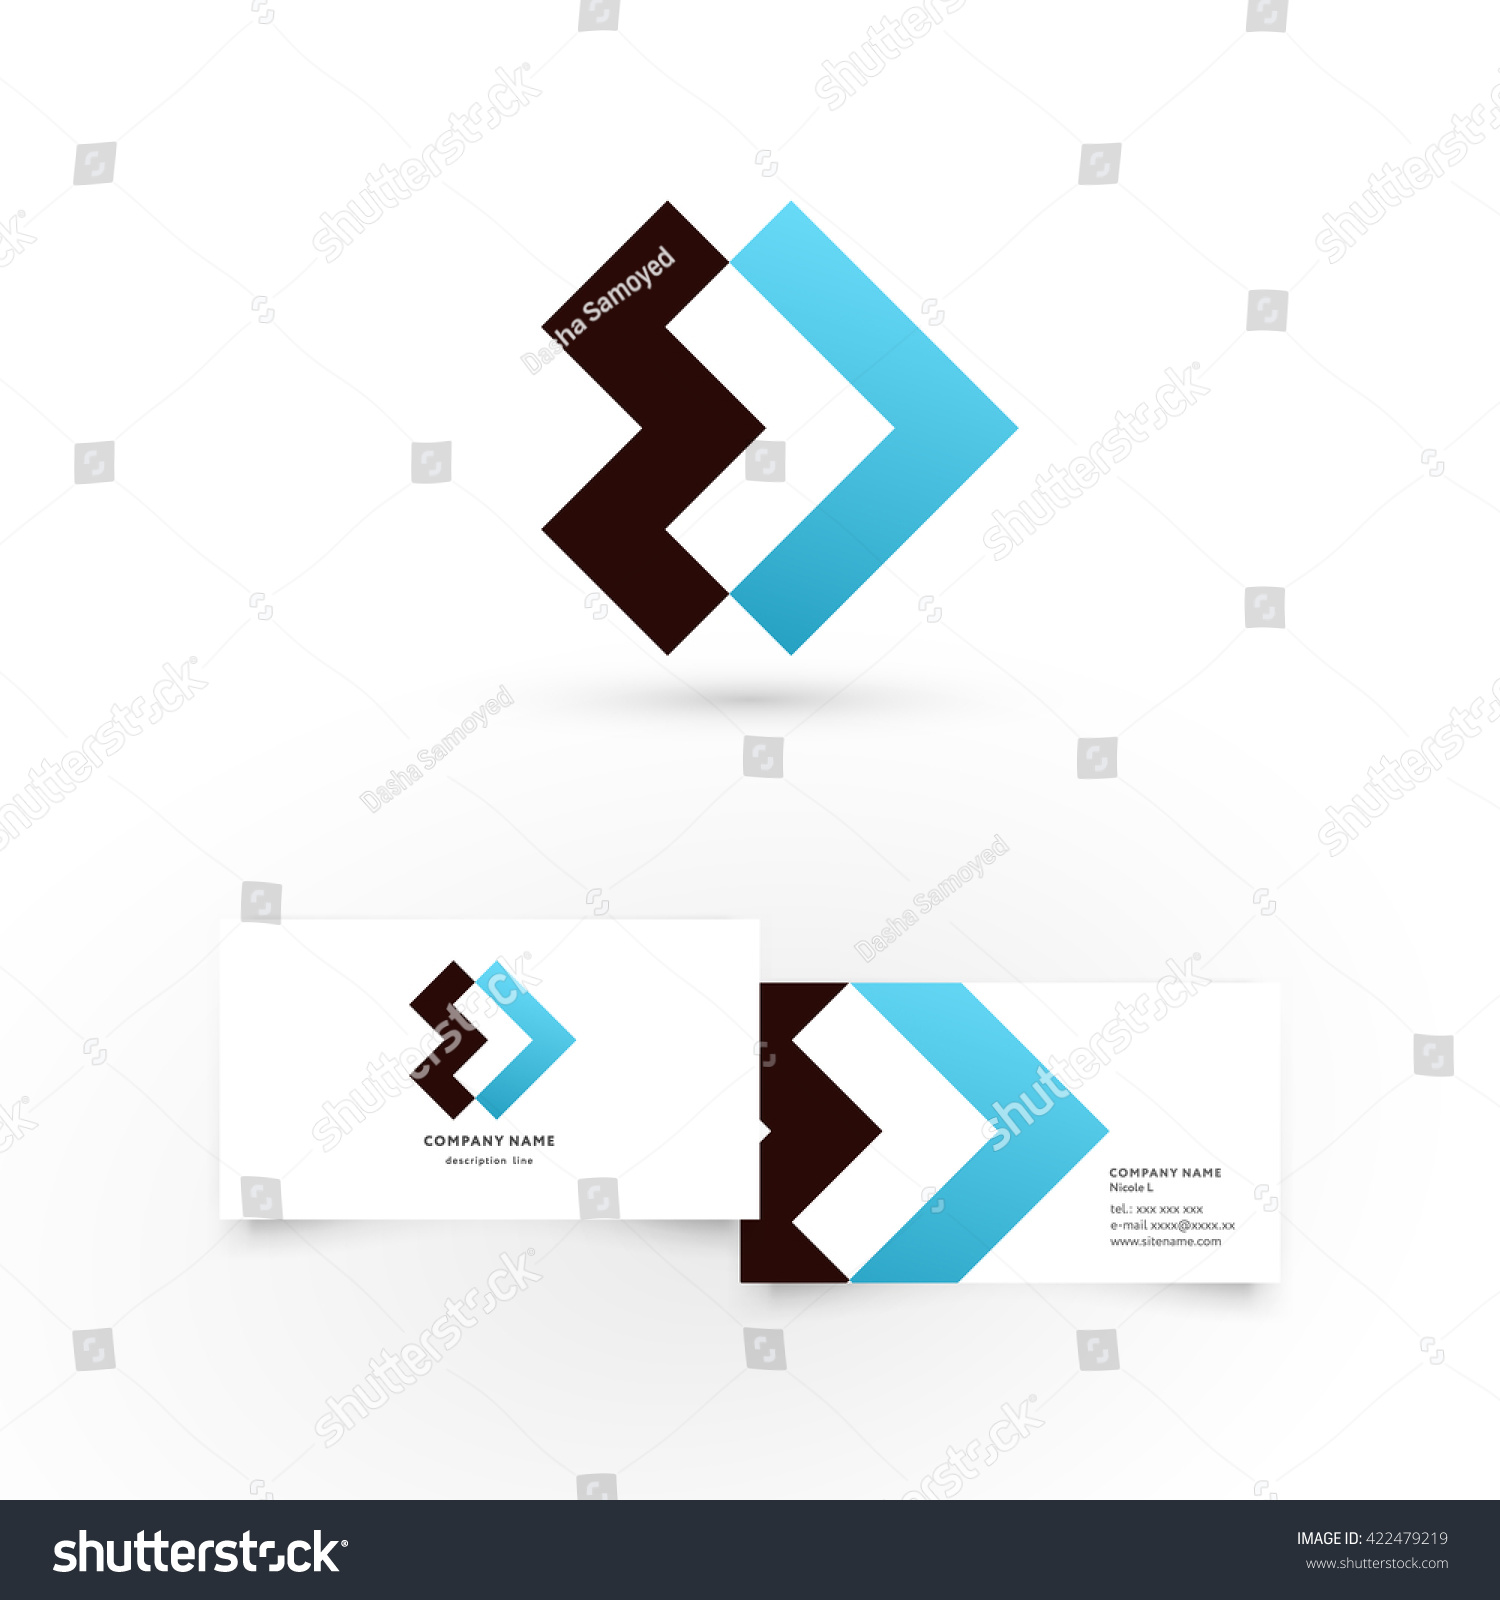 modern icon design logo element business stock vector